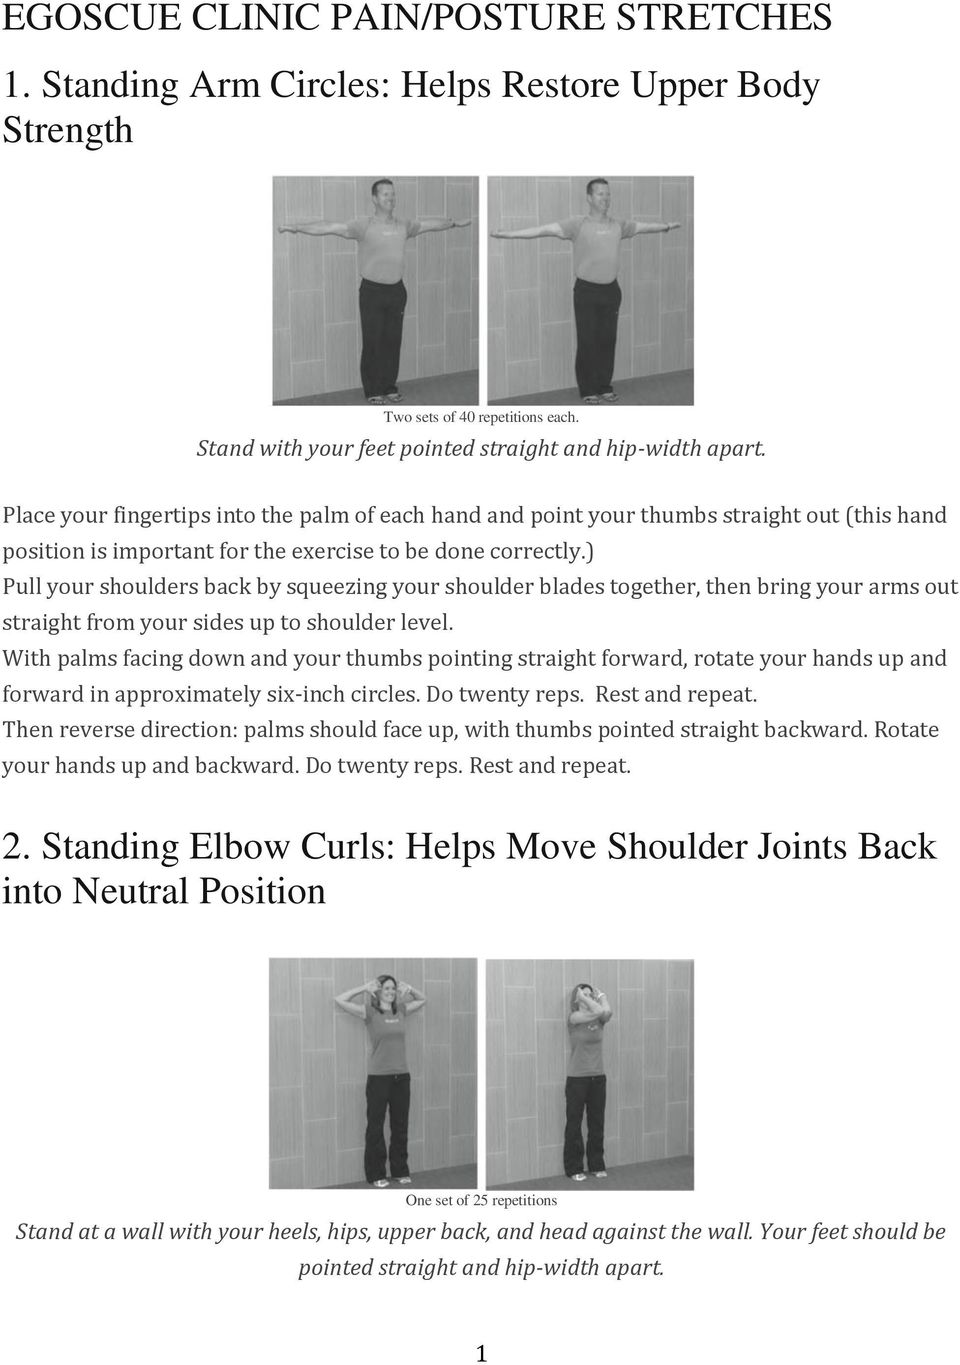 EGOSCUE CLINIC PAIN/POSTURE STRETCHES 1  Standing Arm Circles: Helps